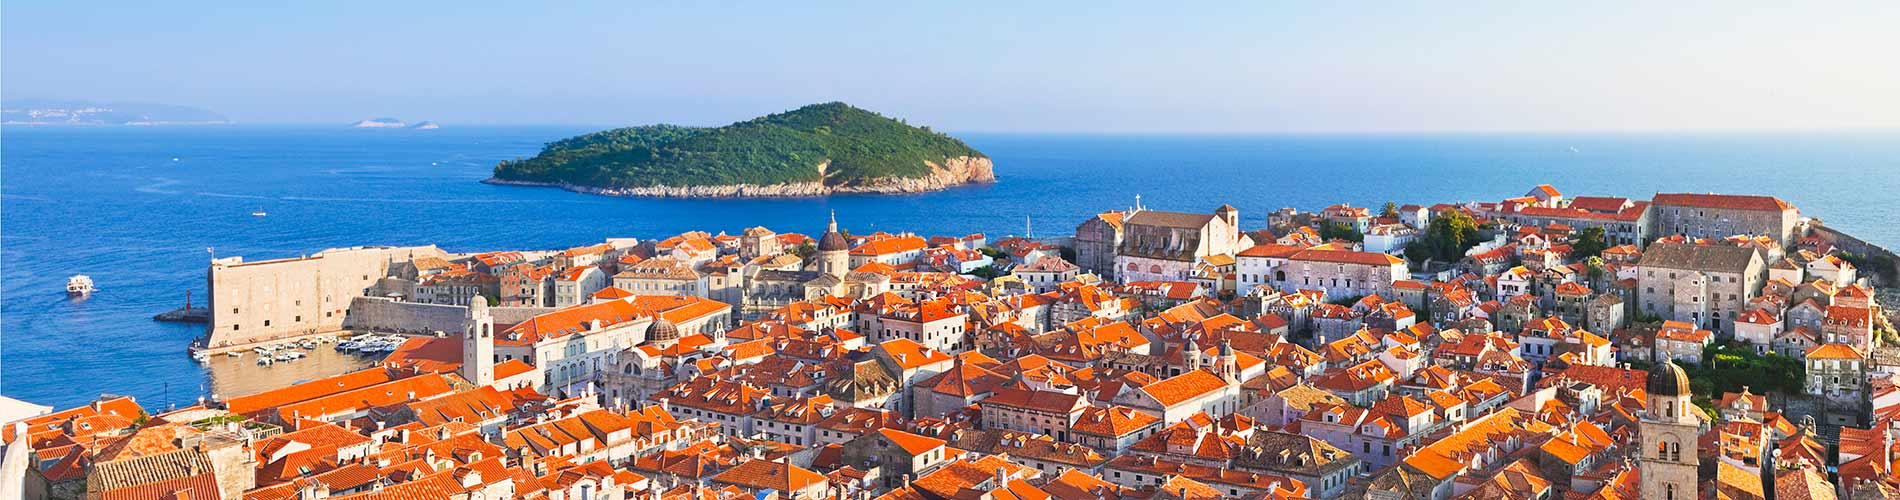 Panorama of Dubrovnik in Croatia.jpg